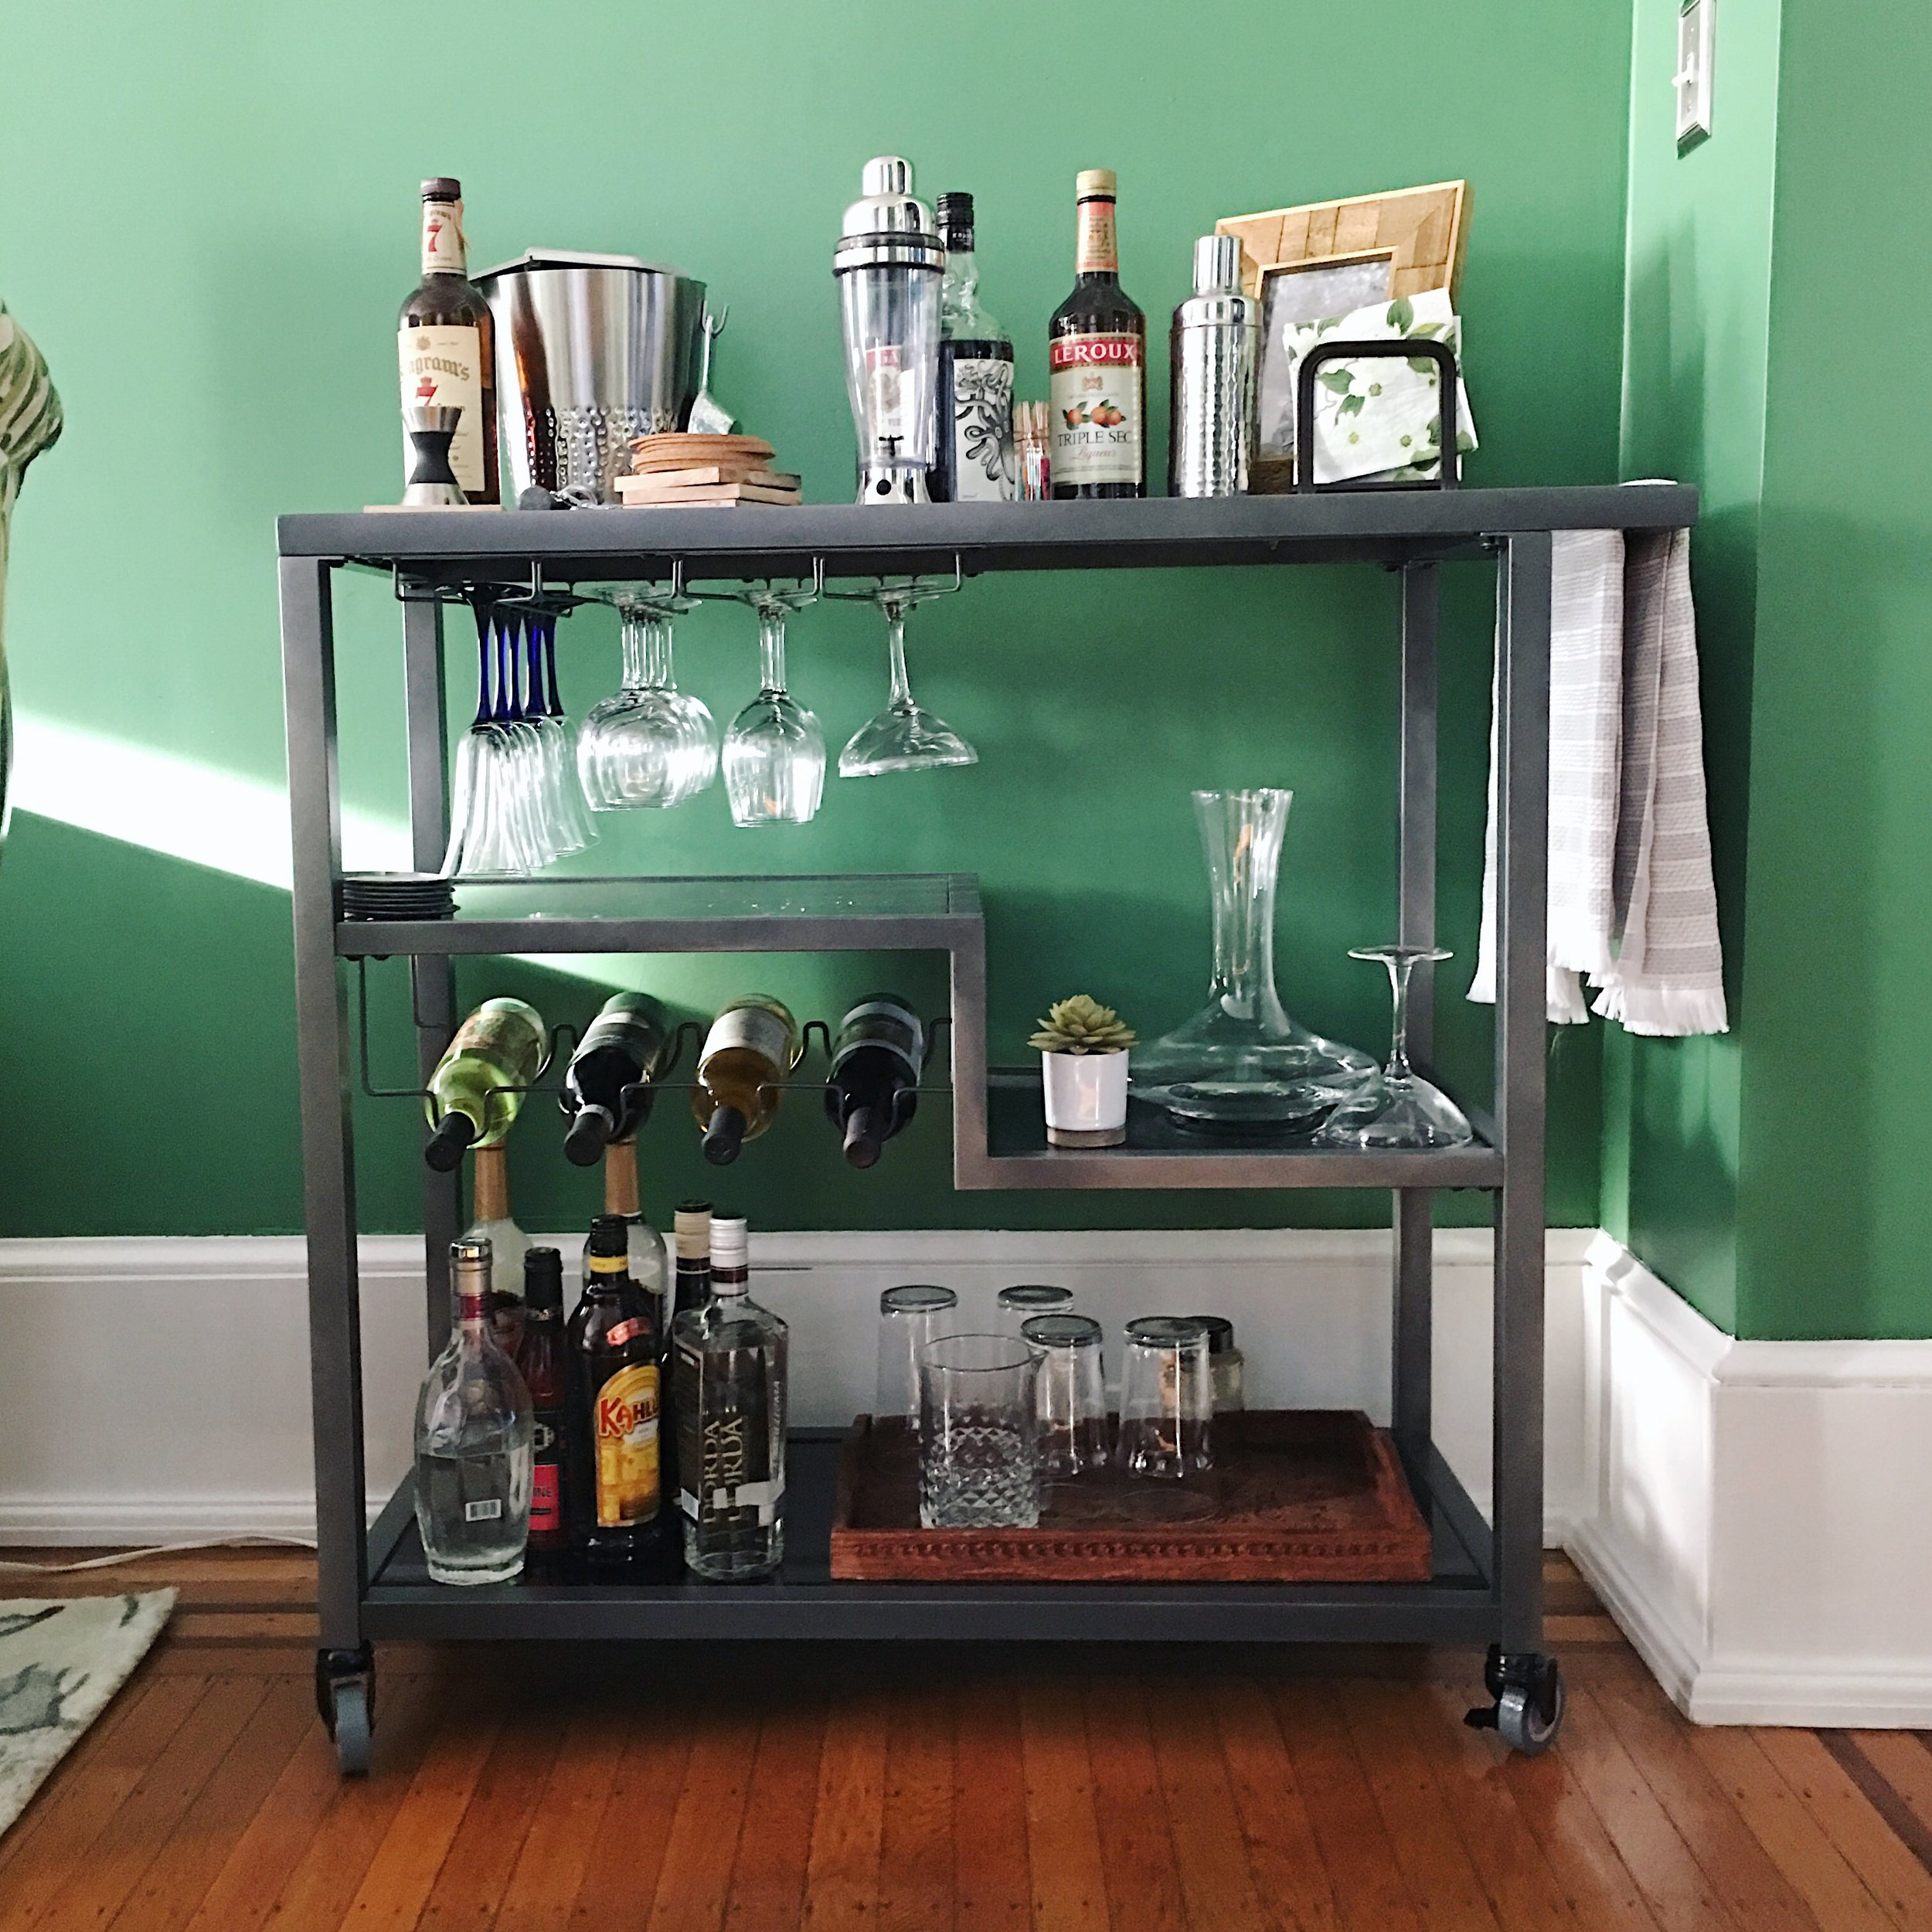 Large barcart, perfect for entertaining